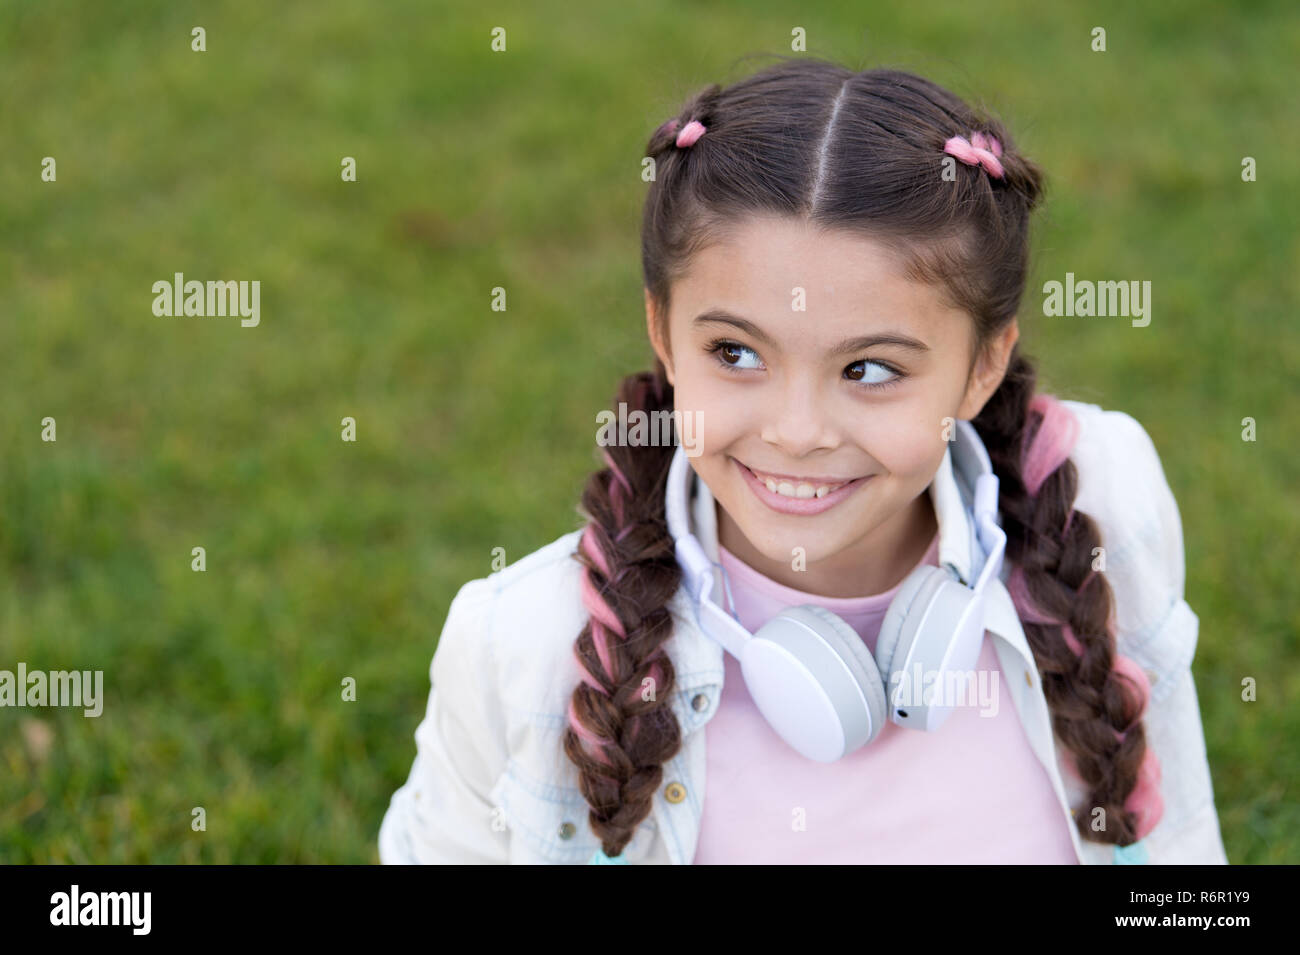 f21fde58d Happy Carefree Little Girl Walking Stock Photos   Happy Carefree ...